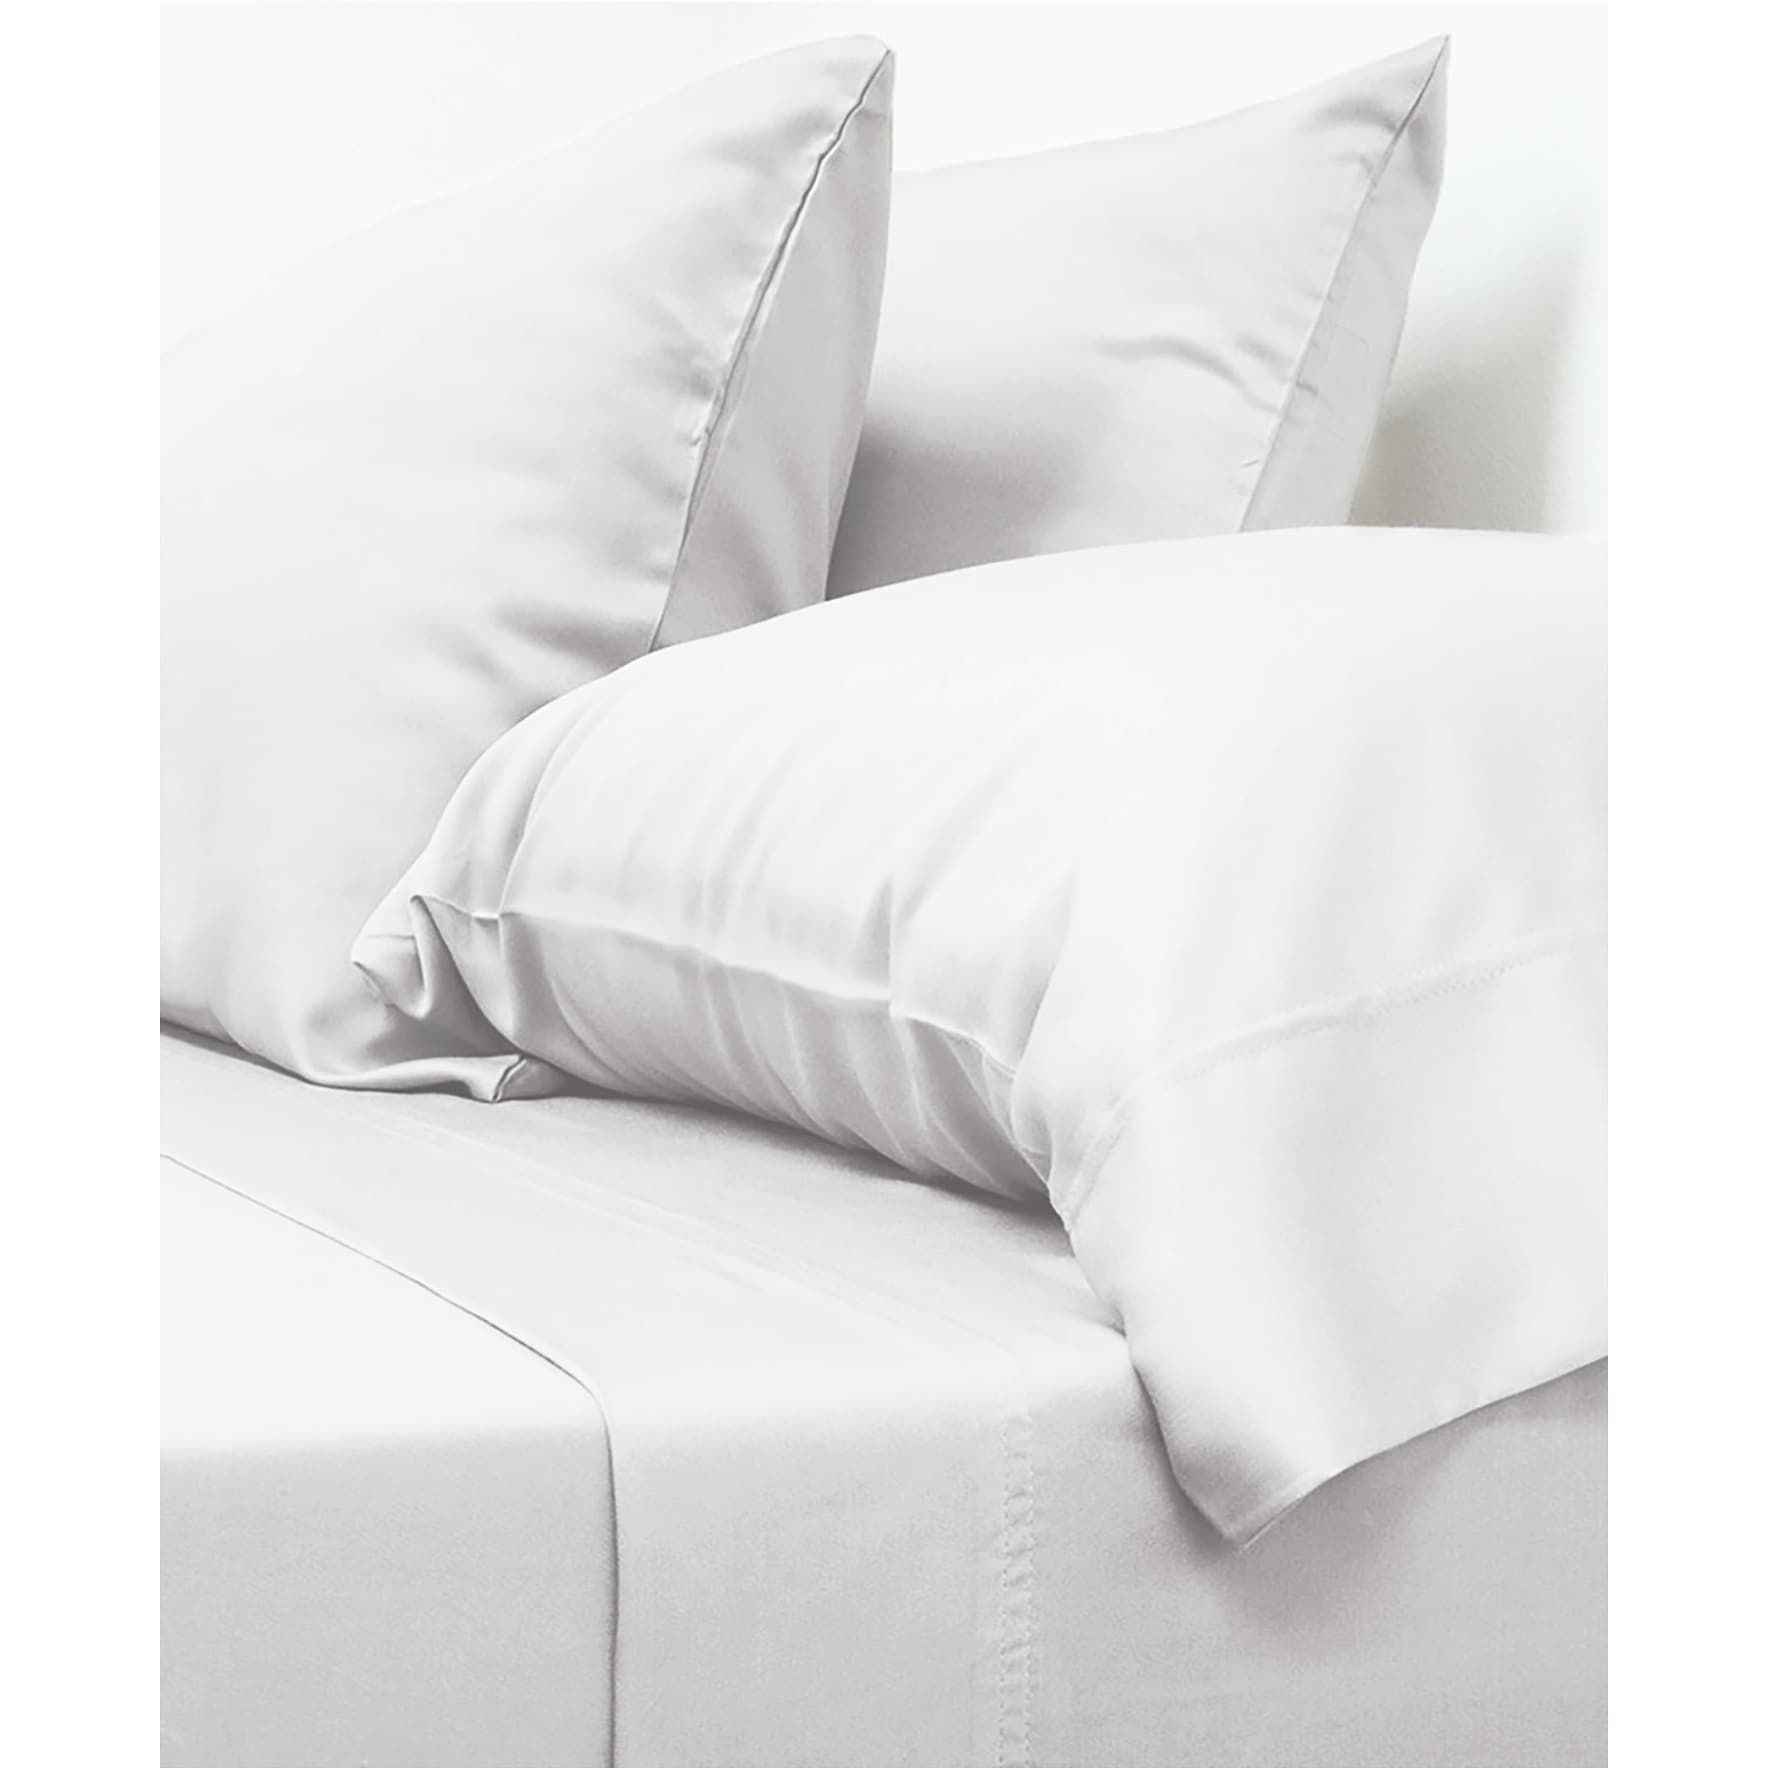 Cariloha Luxury Viscose From Bamboo 4 Piece Classic Bed Sheet Set